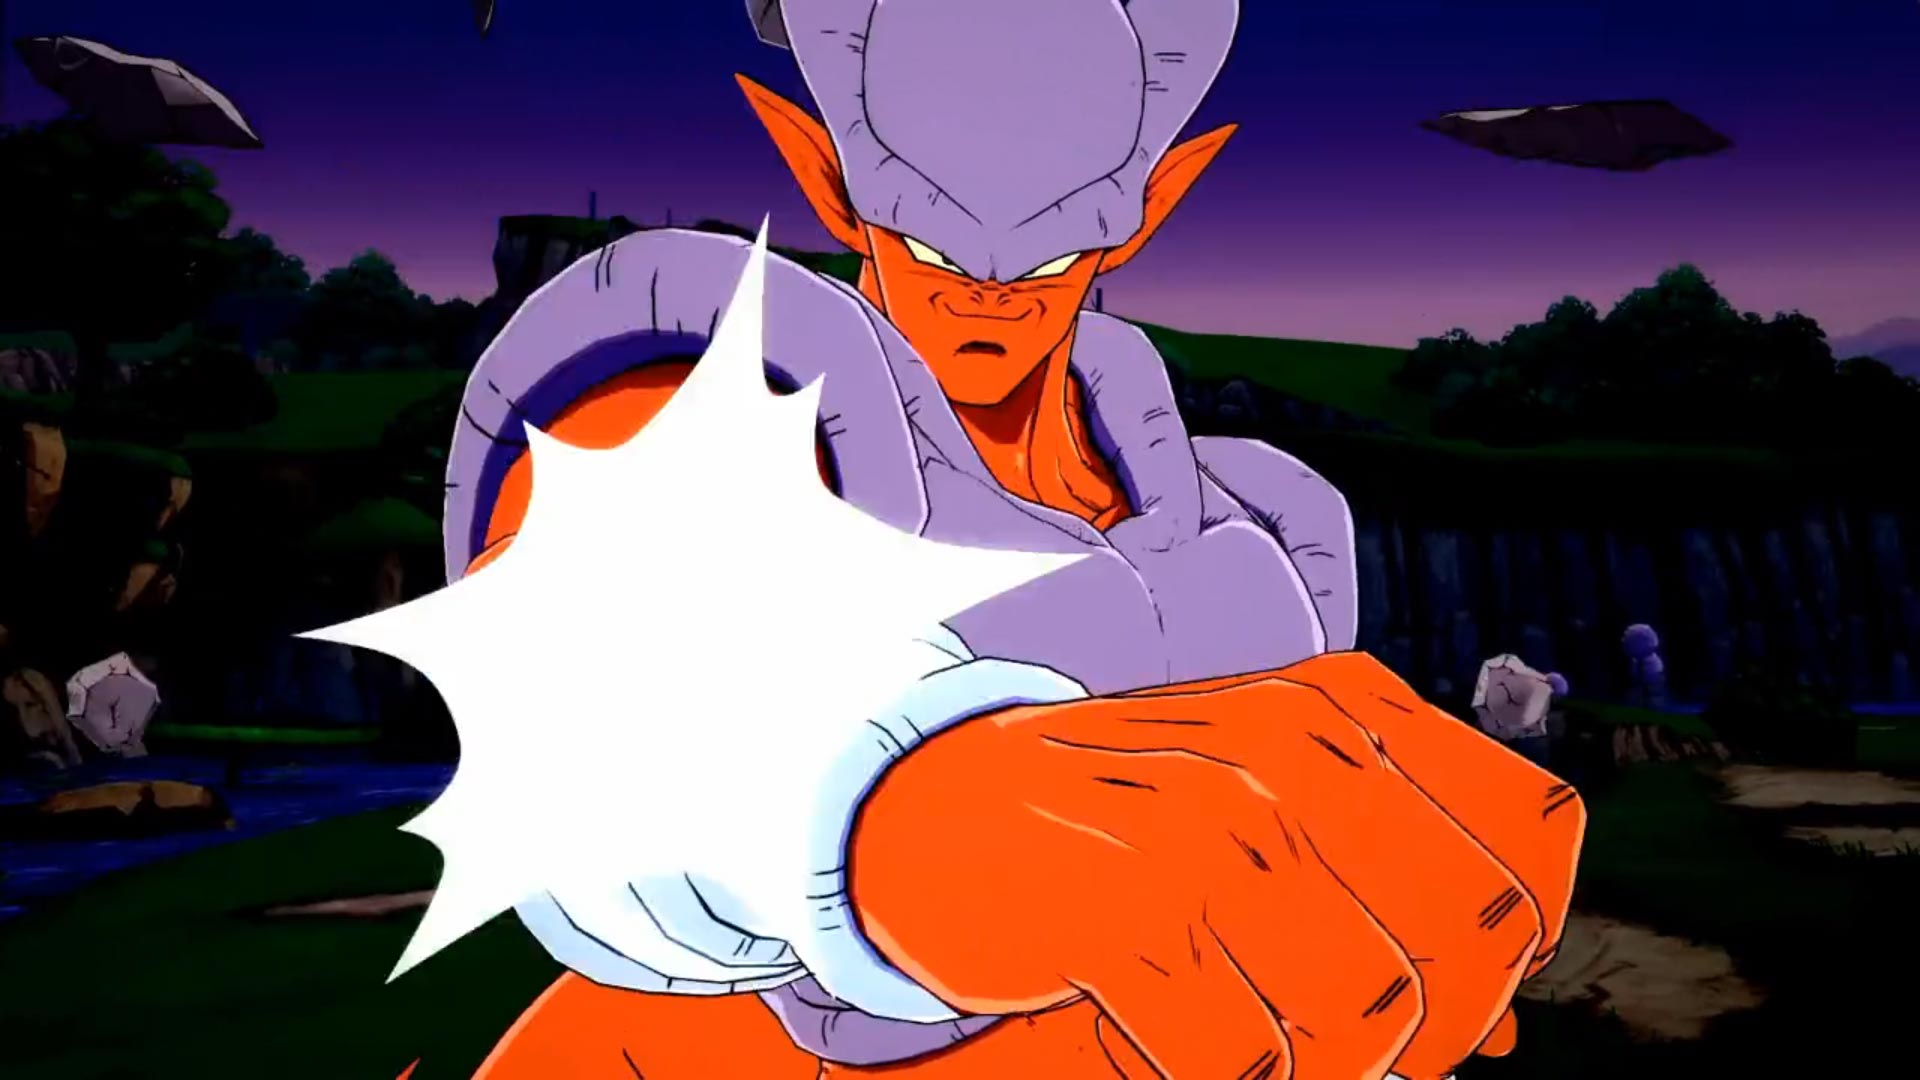 Janemba and Super Saiyan Blue Gogeta Dragon Ball FighterZ gallery 4 out of 12 image gallery